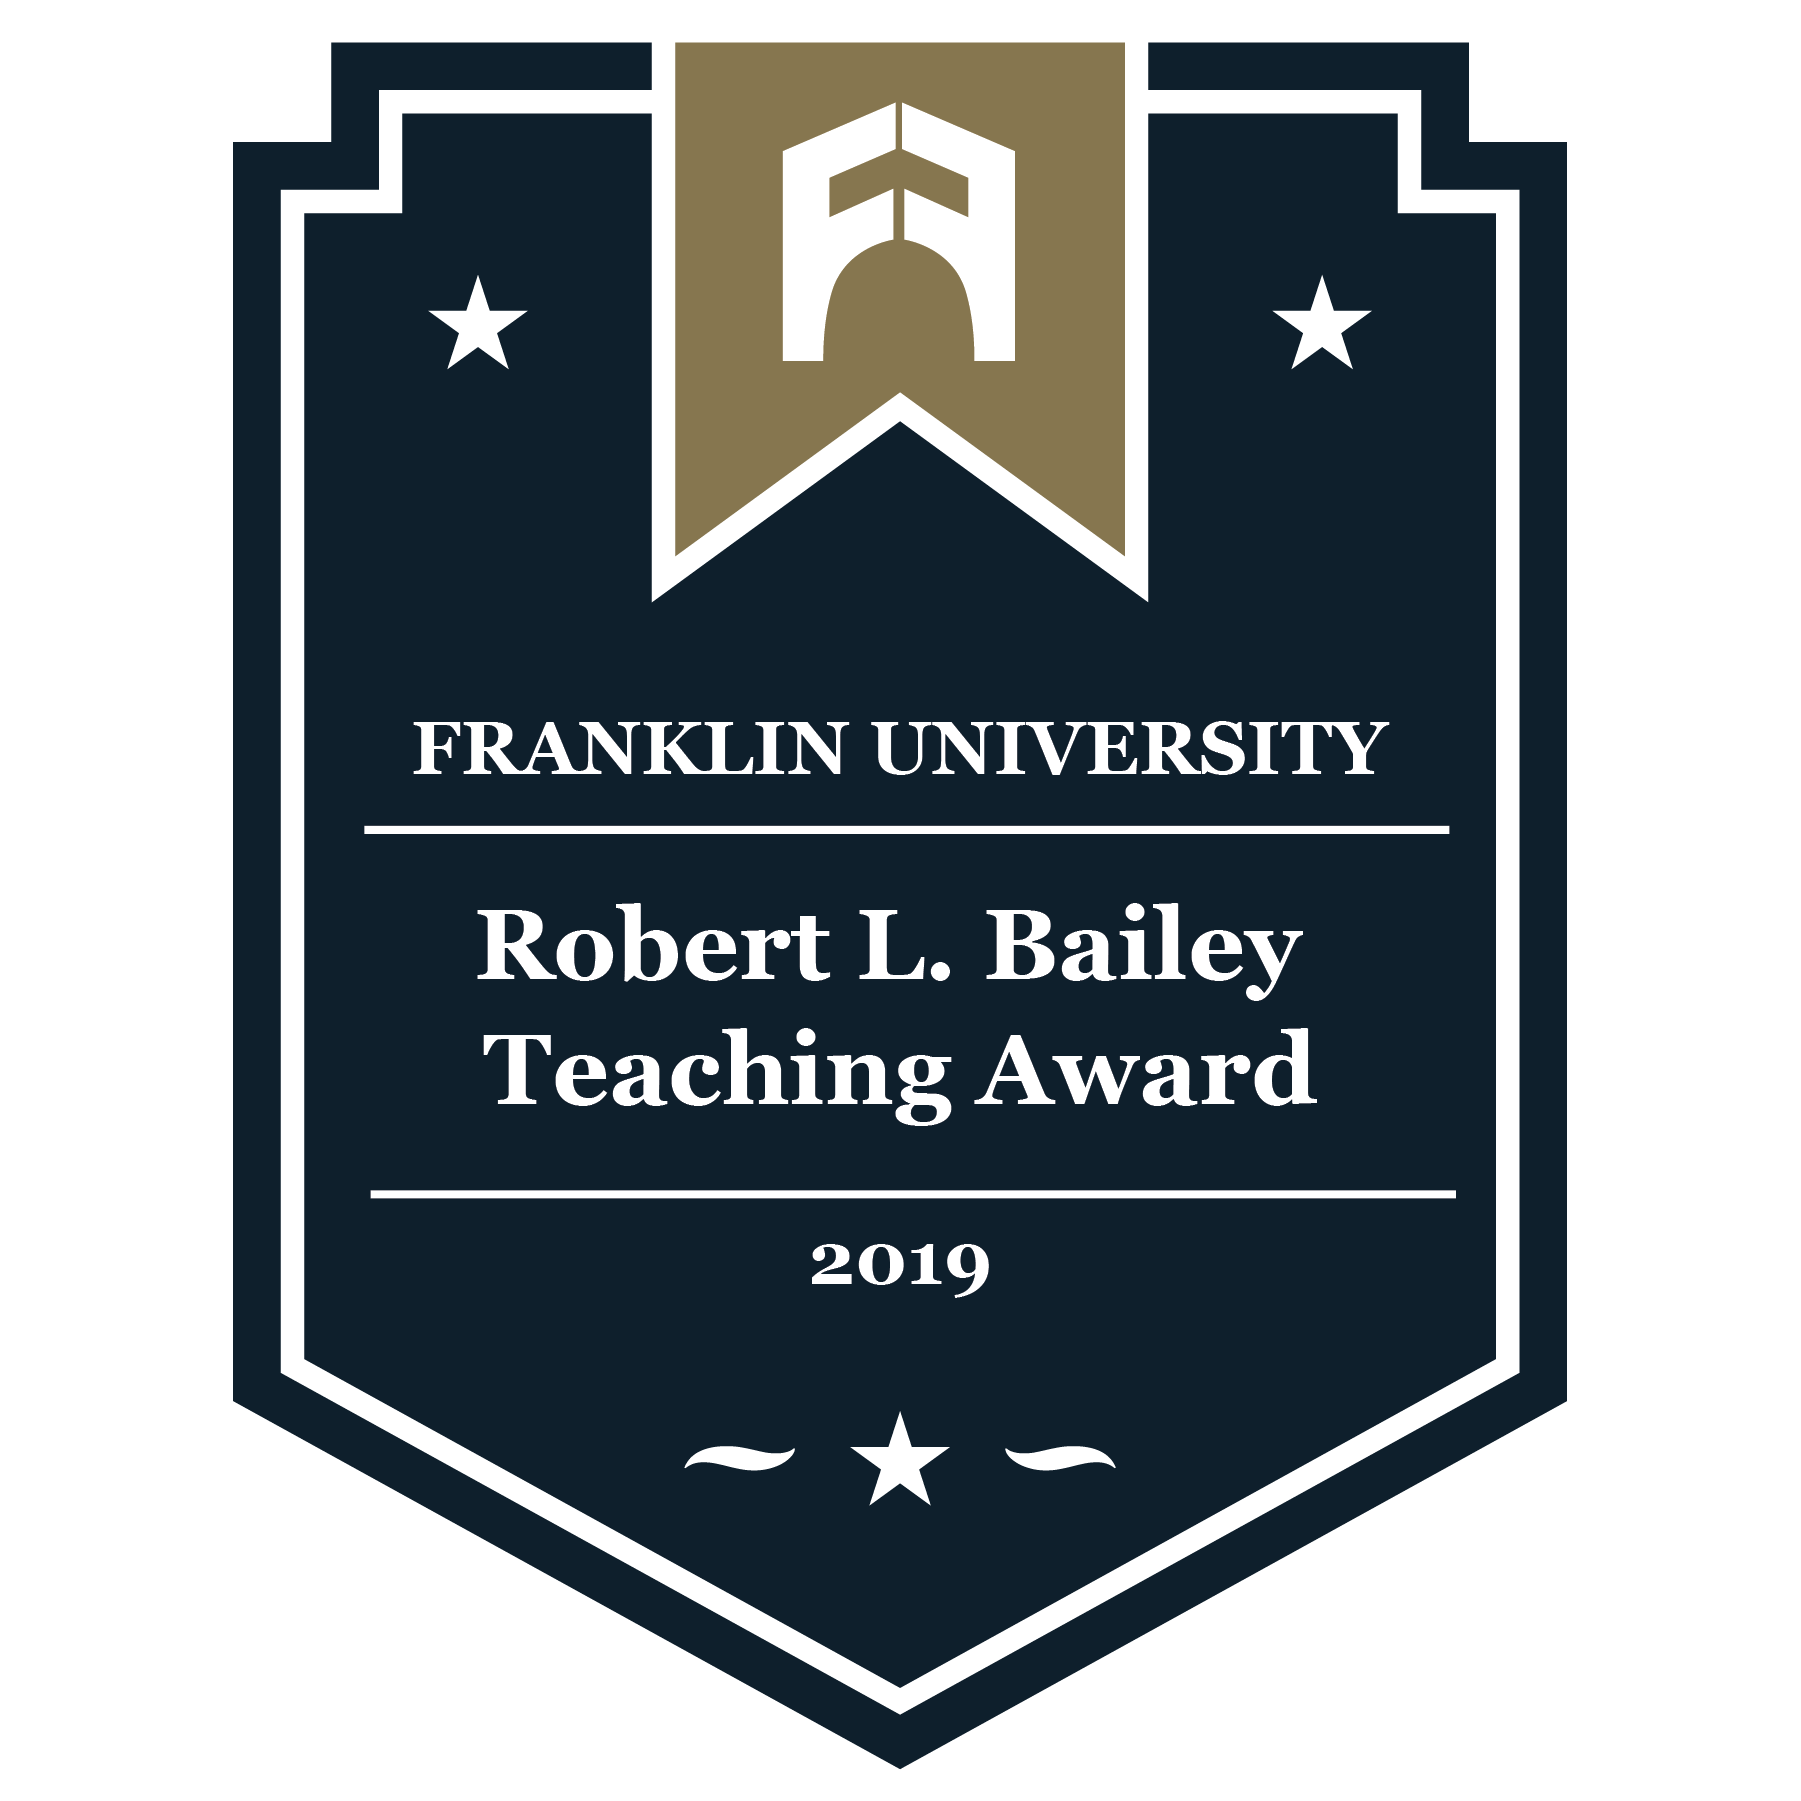 2019 Robert L. Bailey Teaching Award